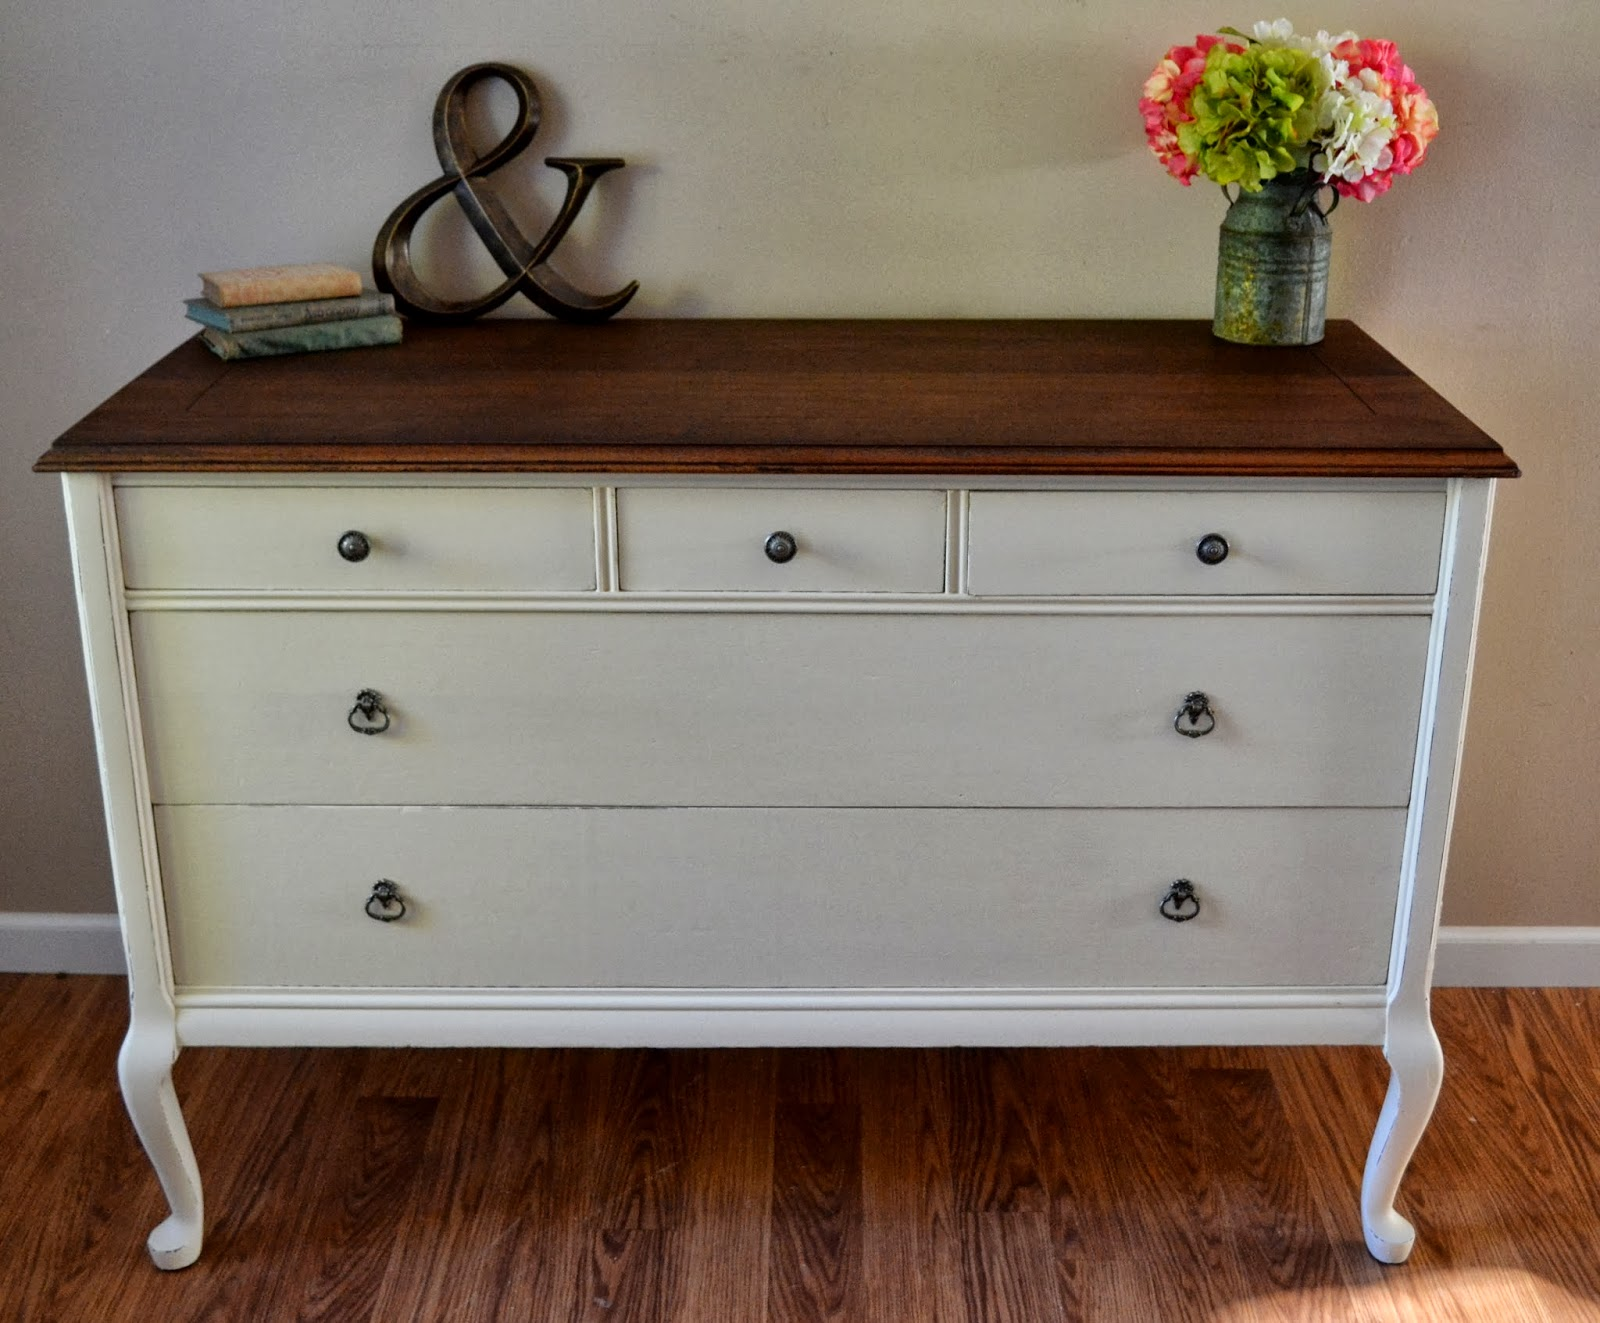 Helen Nichole Designs Dresser In Navajo White Giveaway Winner